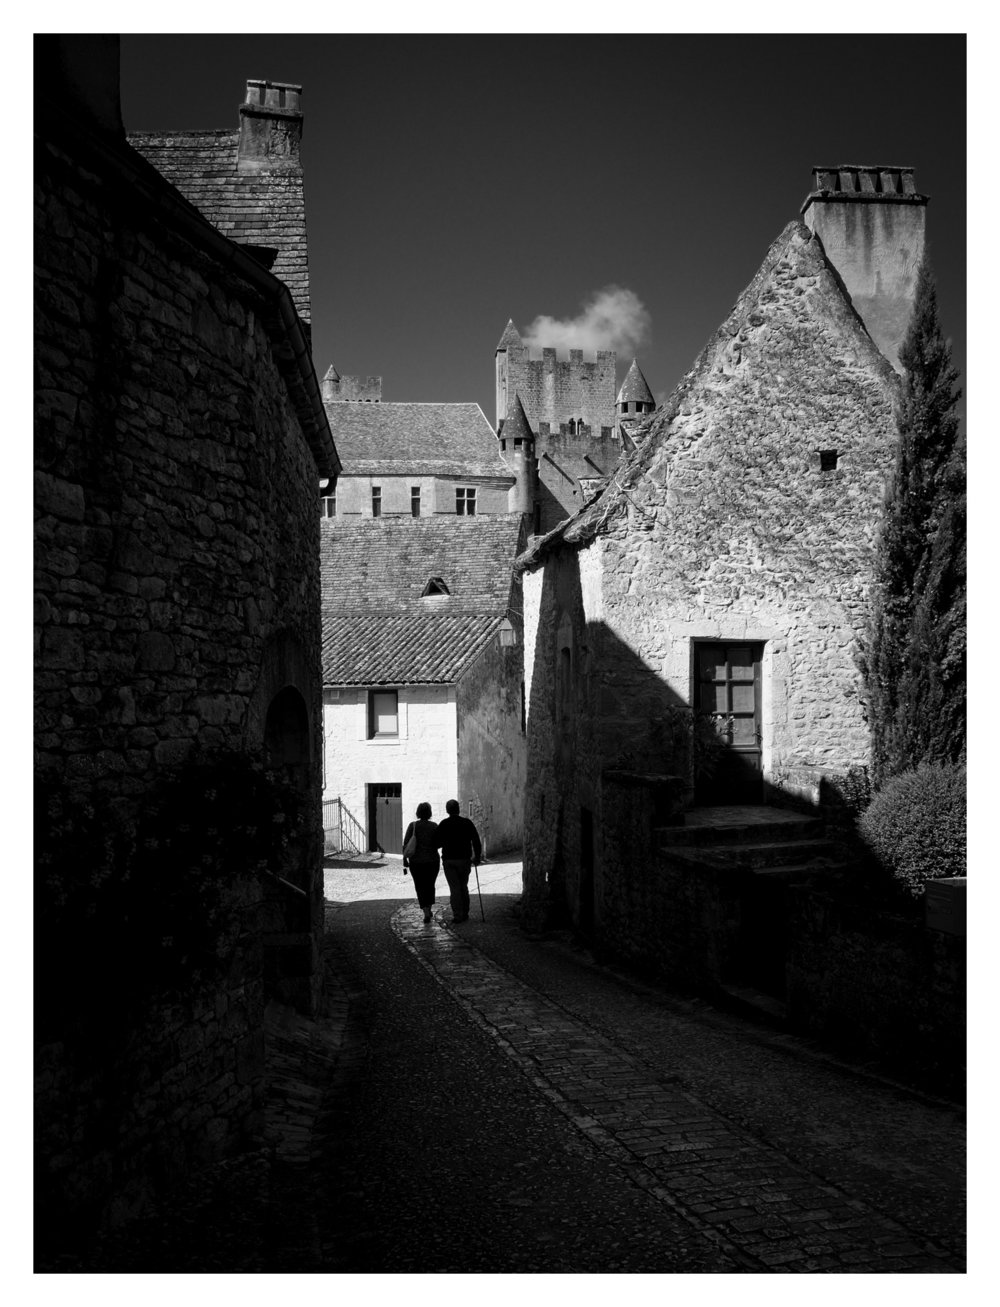 And who says you can't do street photography in small villages?